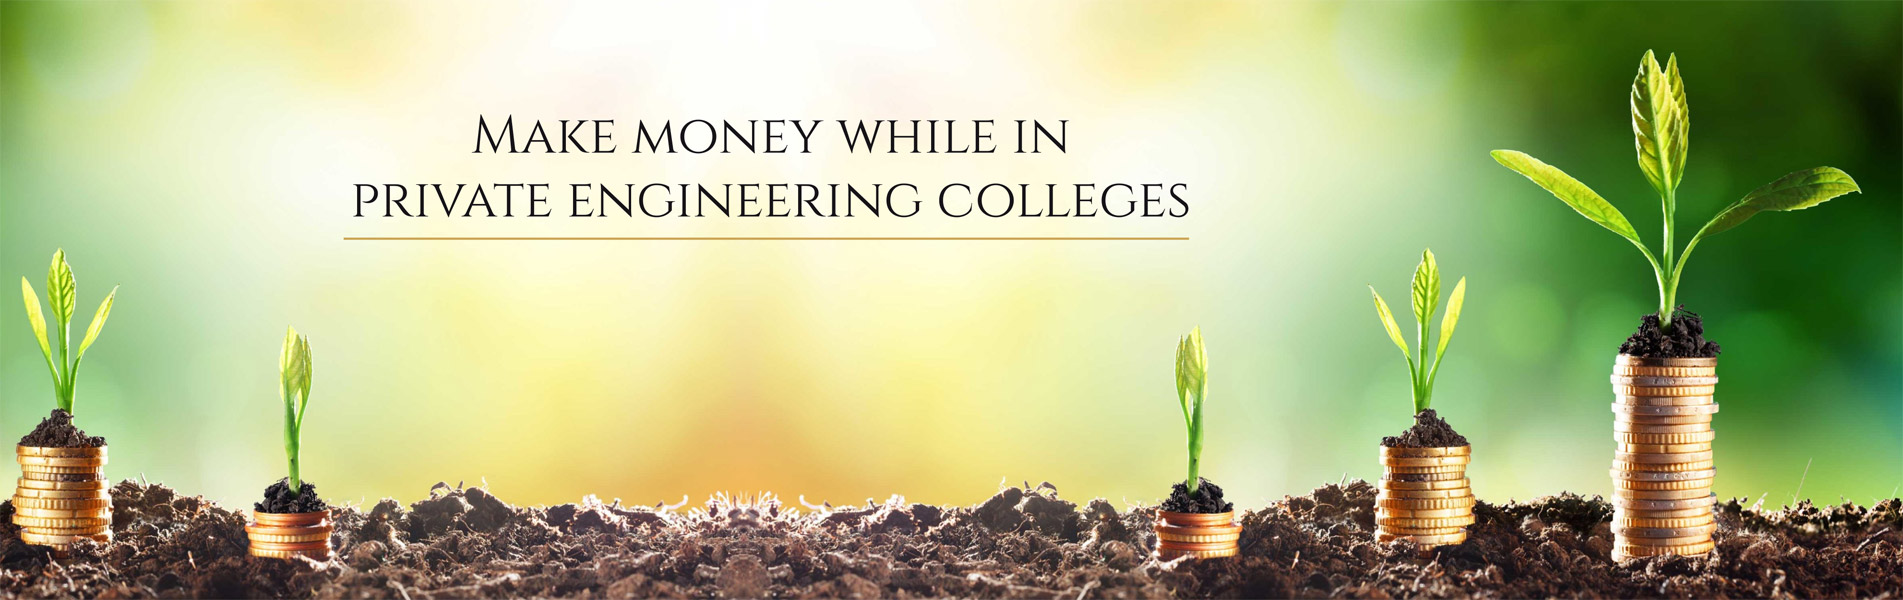 Make-Money-While-in-Private-Engineering-Colleges